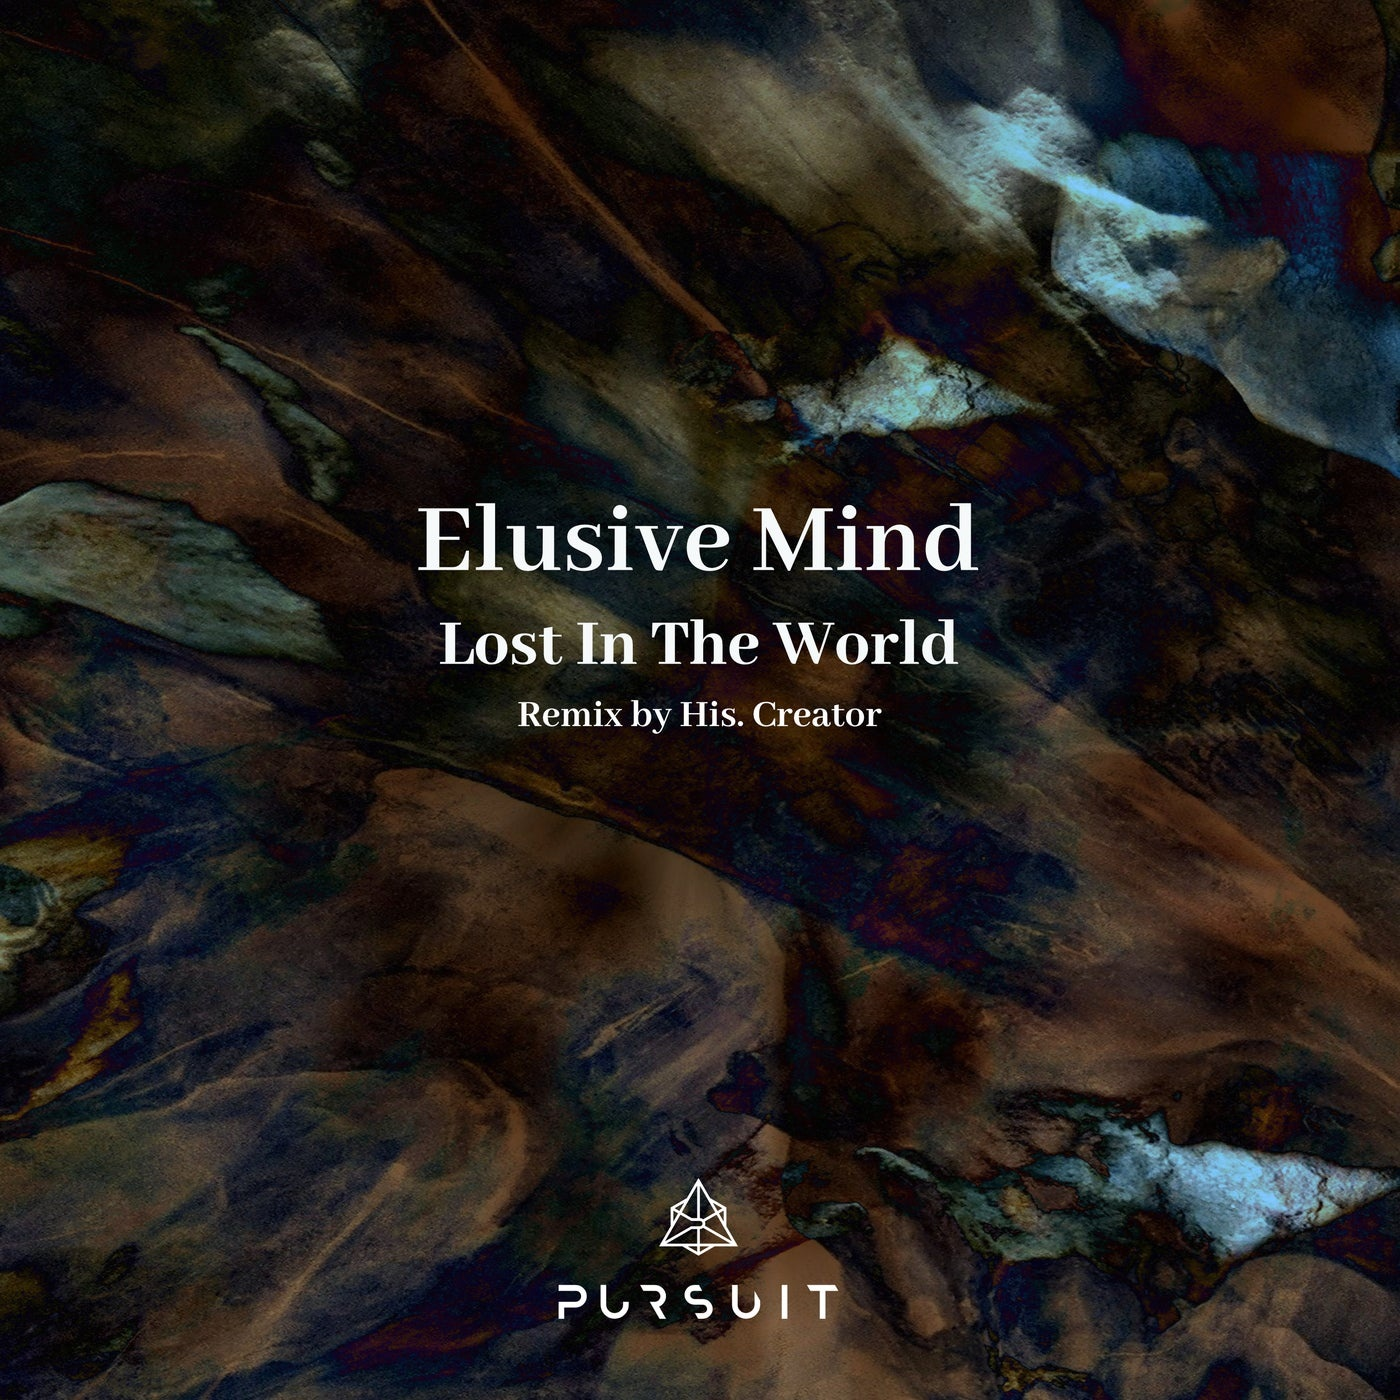 Cover - Elusive Mind - Lost In The World (His. Creator Remix)